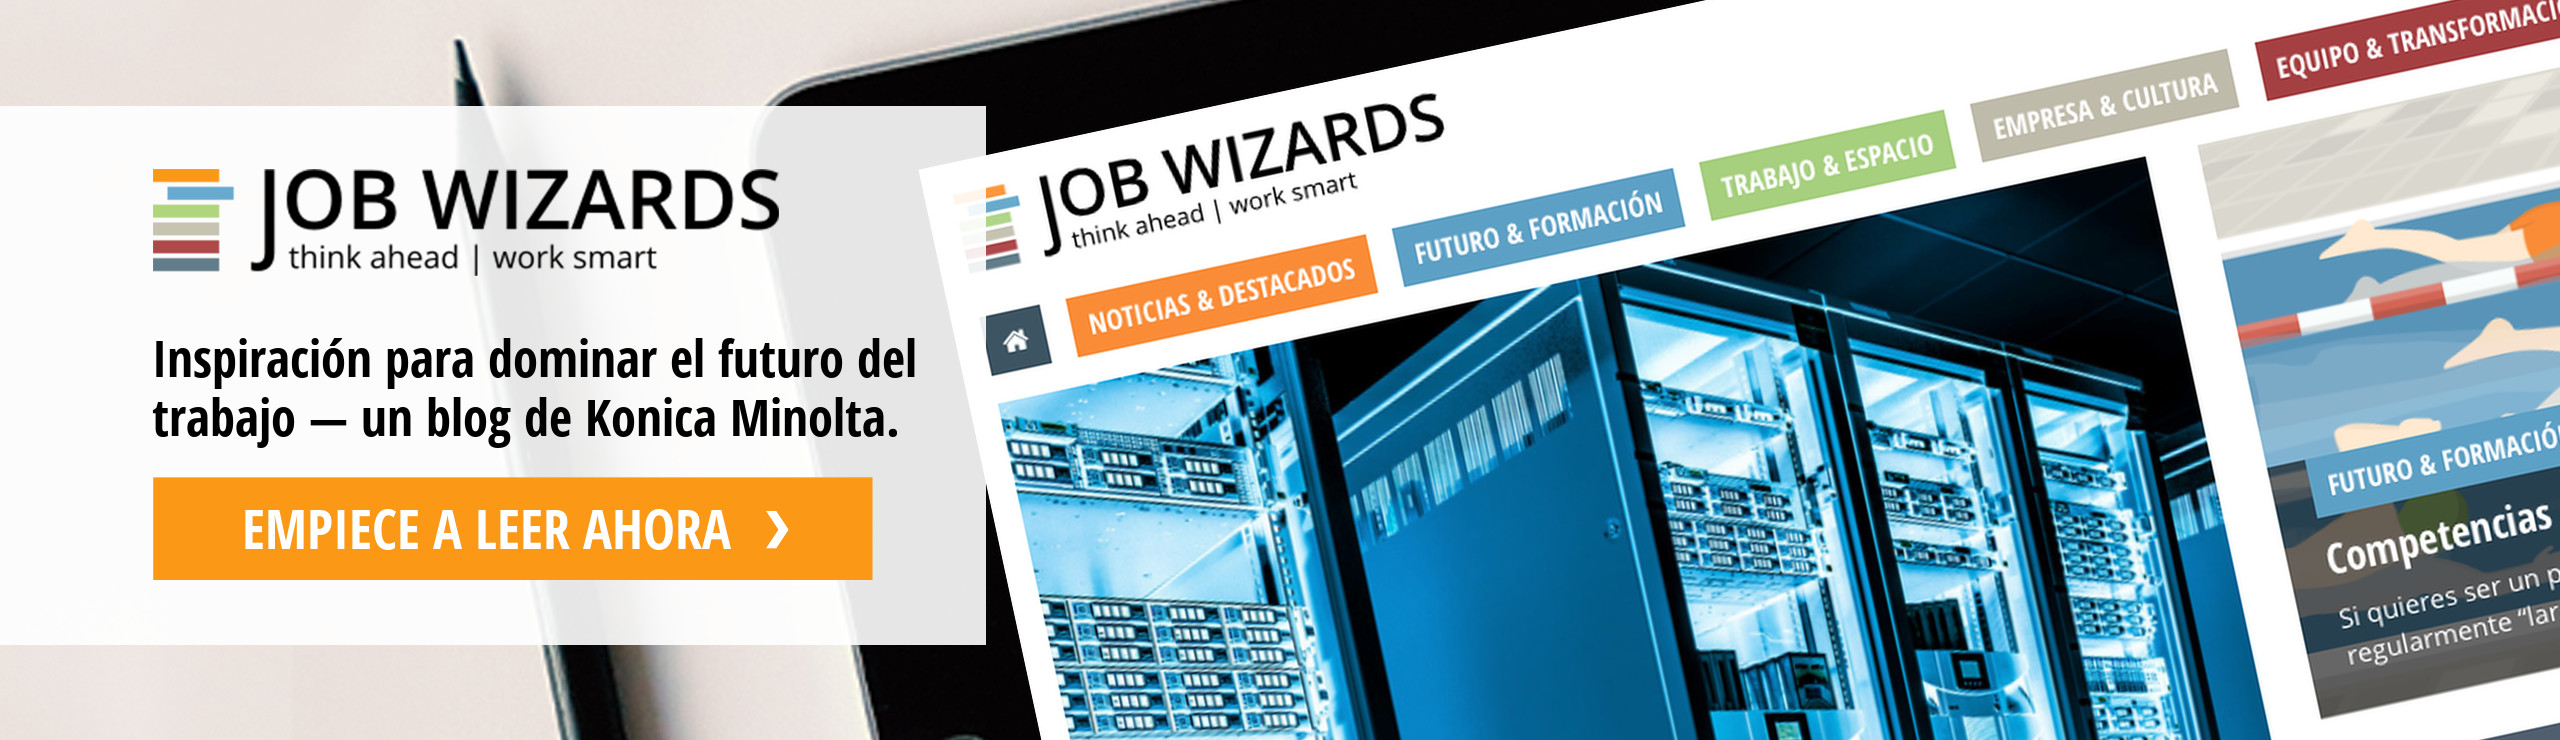 Job Wizards